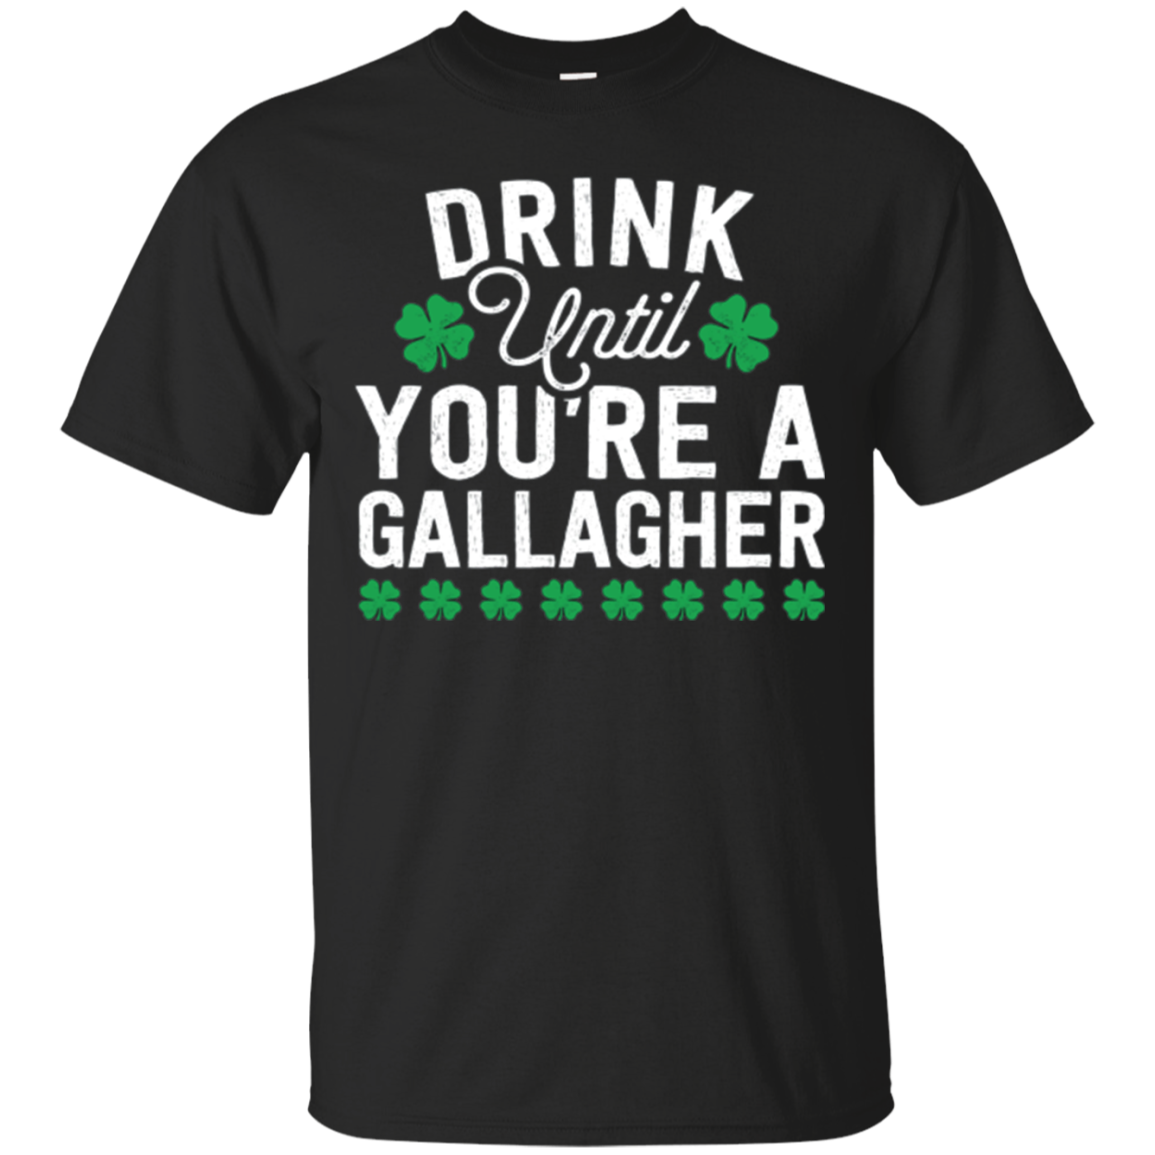 Drink Until You're a Gallagher - Funny St Patrick Day Tshirt